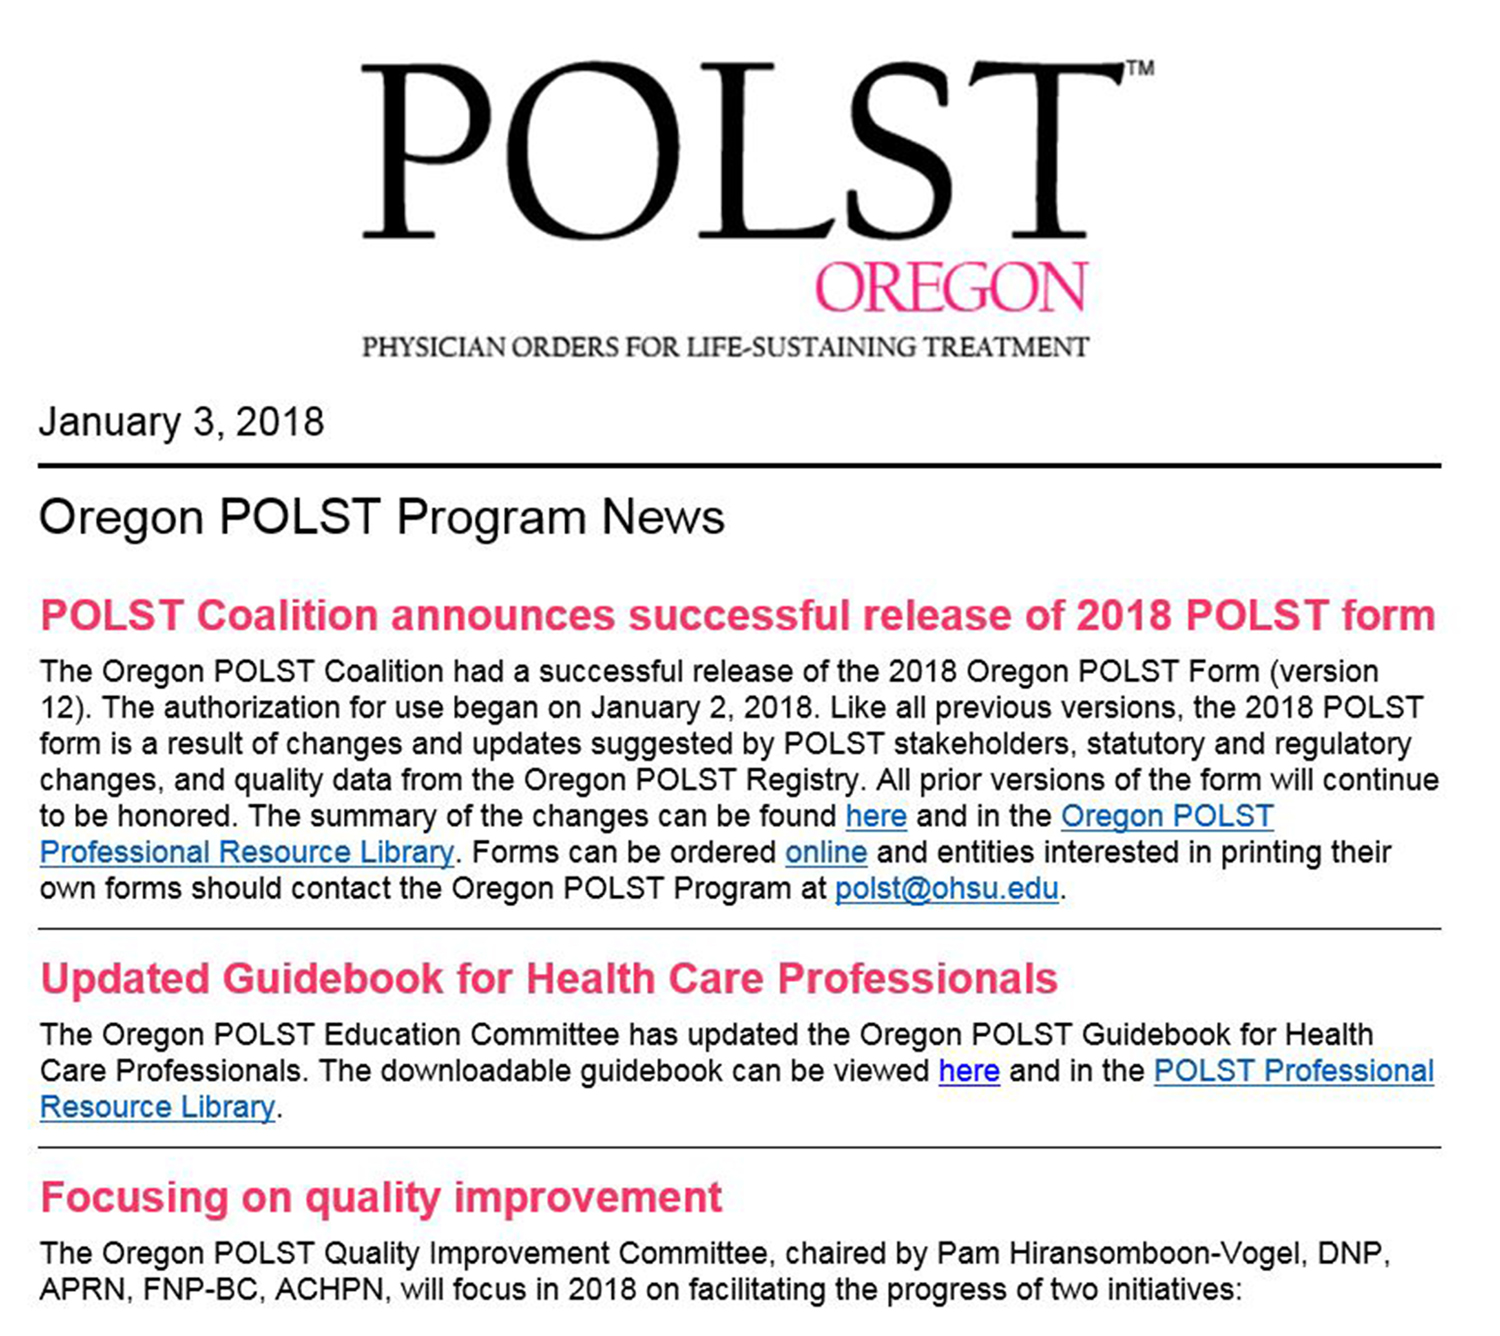 2018.01.03 Oregon POLST Program News.jpg